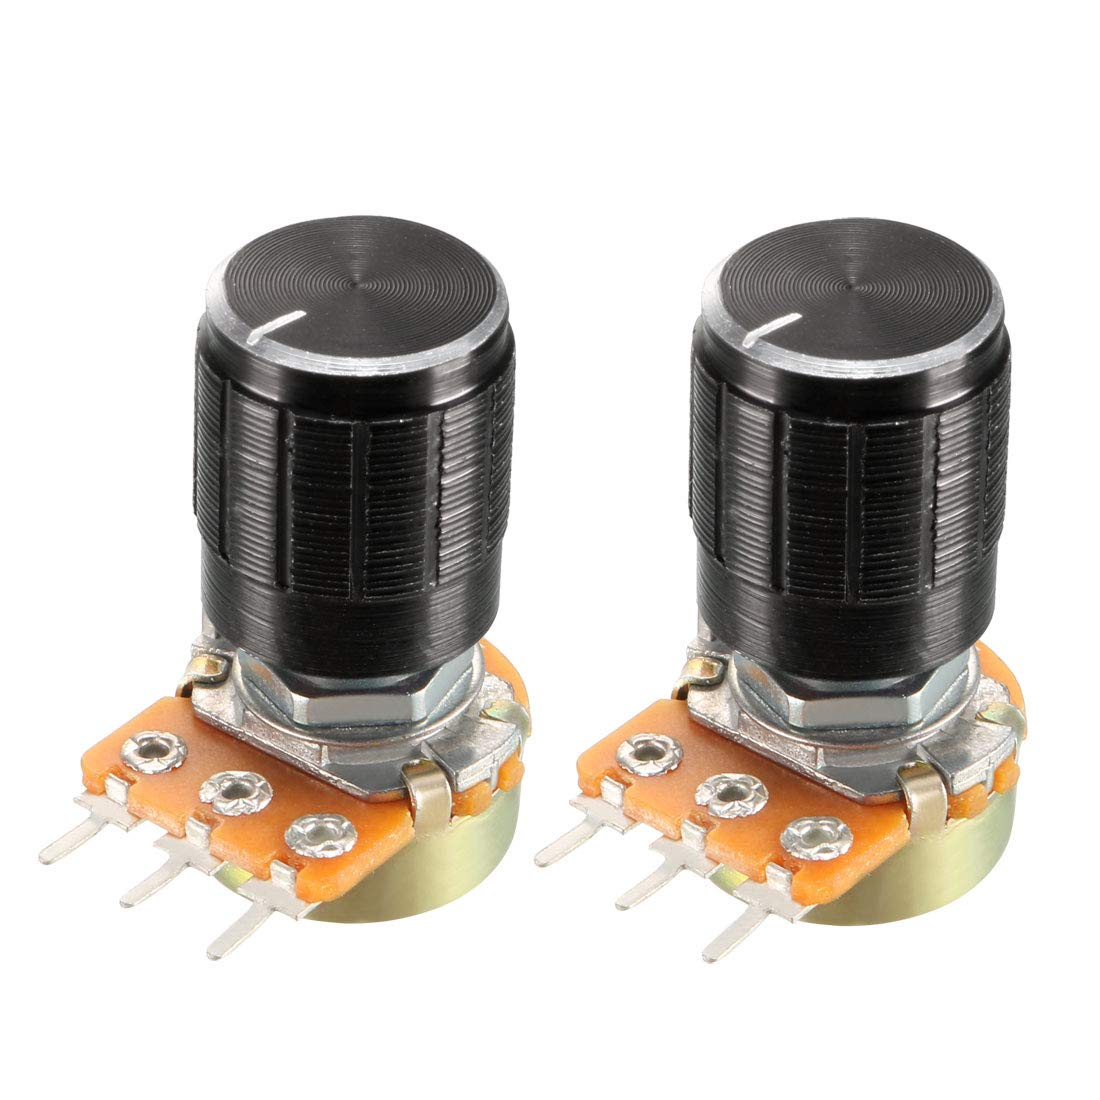 sourcing map WH148 1Pcs 1K Ohm Variable Resistors Single Turn Rotary Carbon Film Taper Potentiometer with Knobs